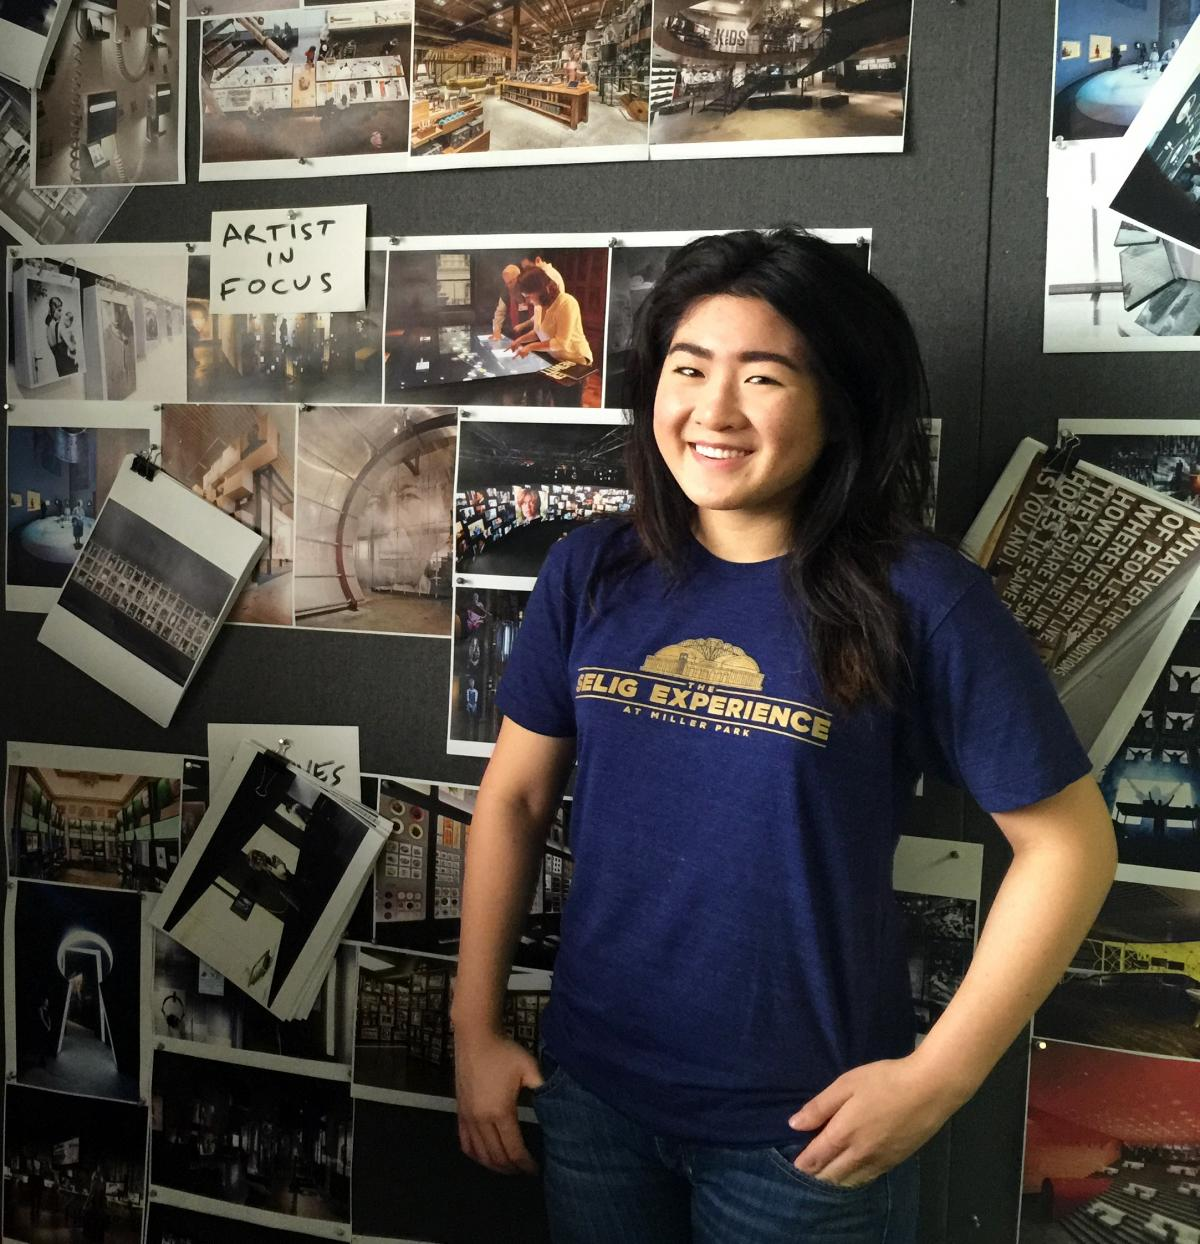 Ryman Arts Internship at BRC Imagination Arts Ashley Cheou (Ryman '13)